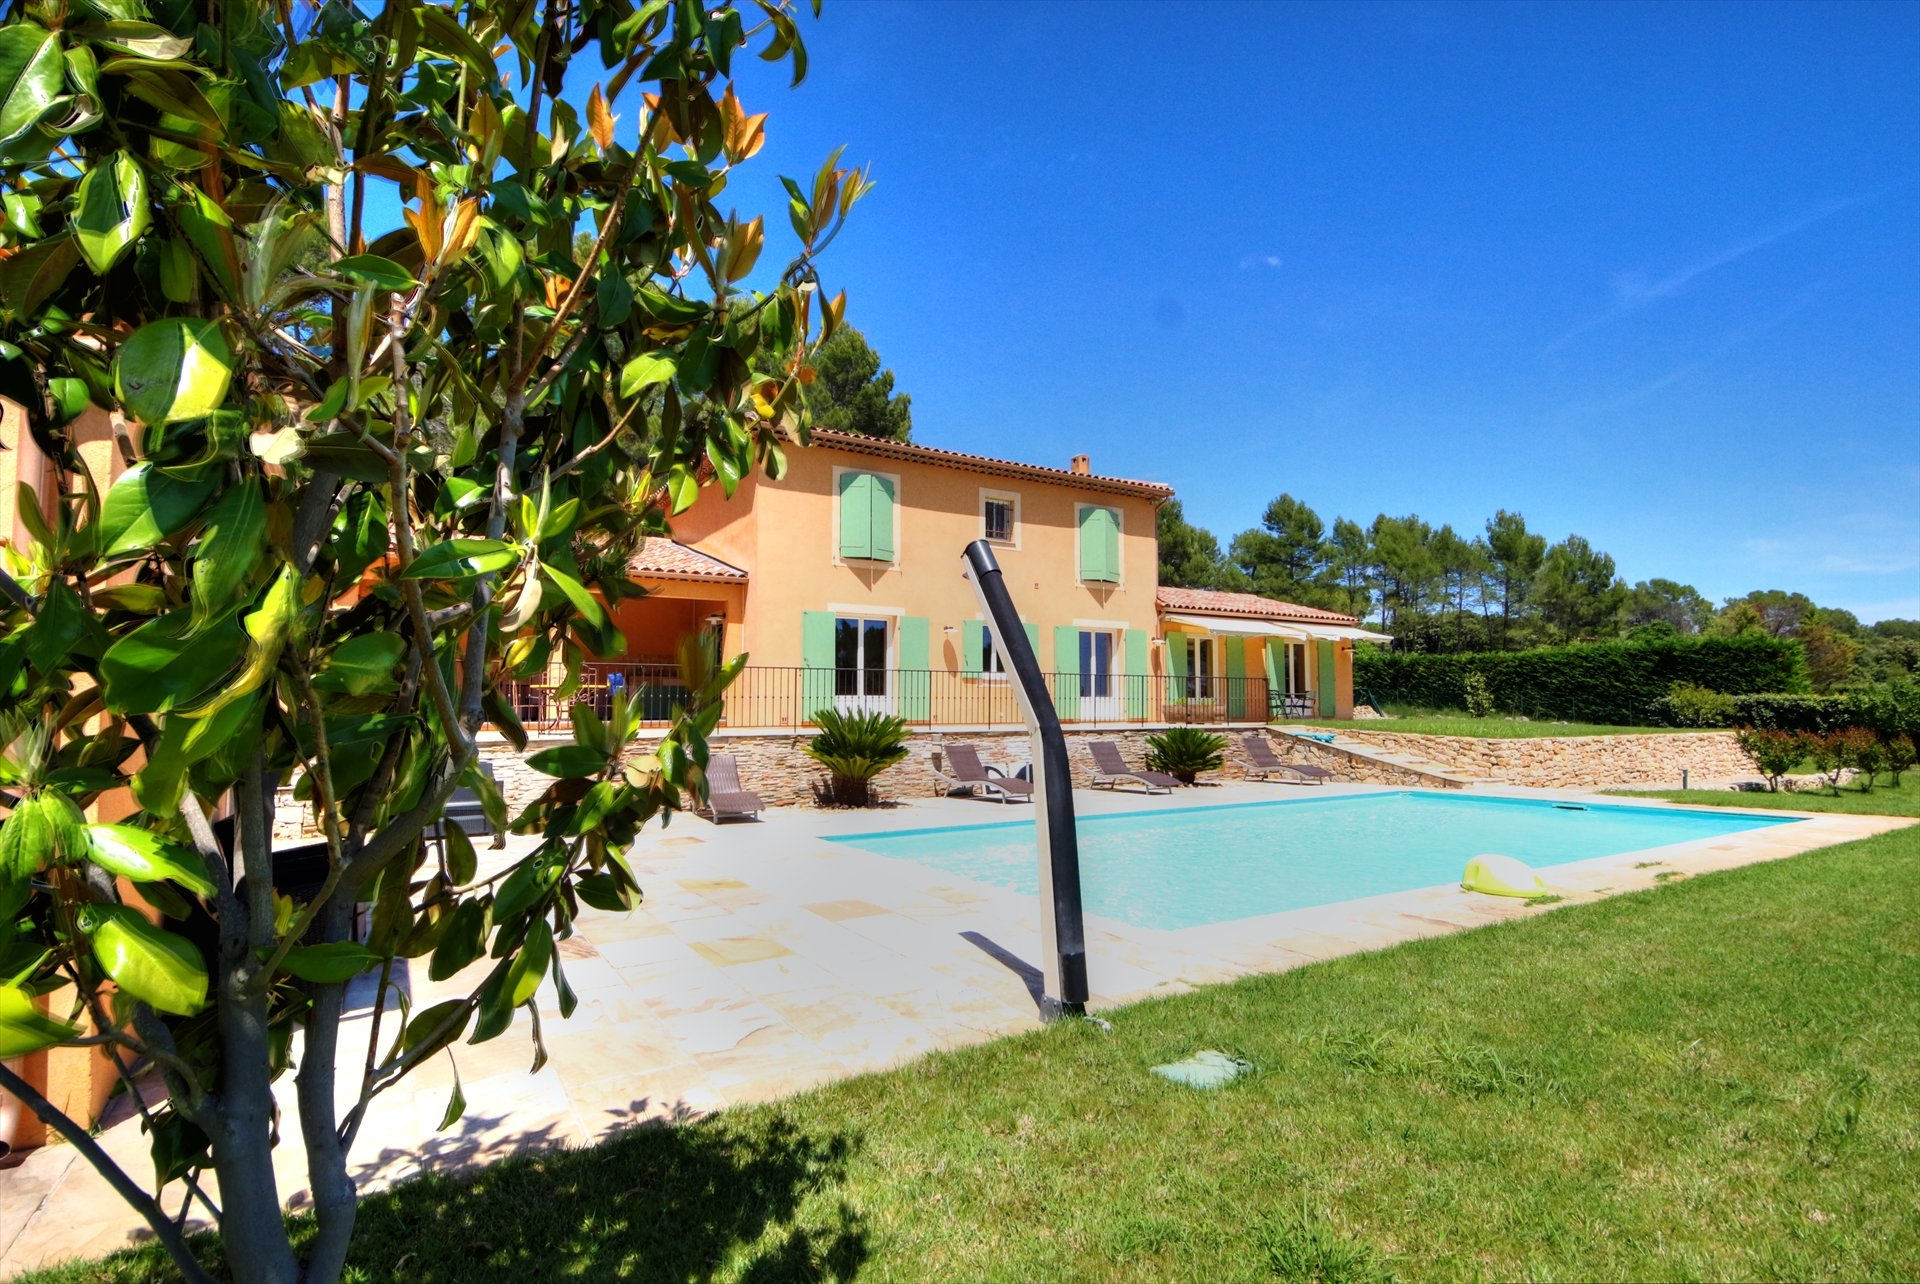 Lorgues, superb provencal house with pool and garage, calm and coutryside Var Provence